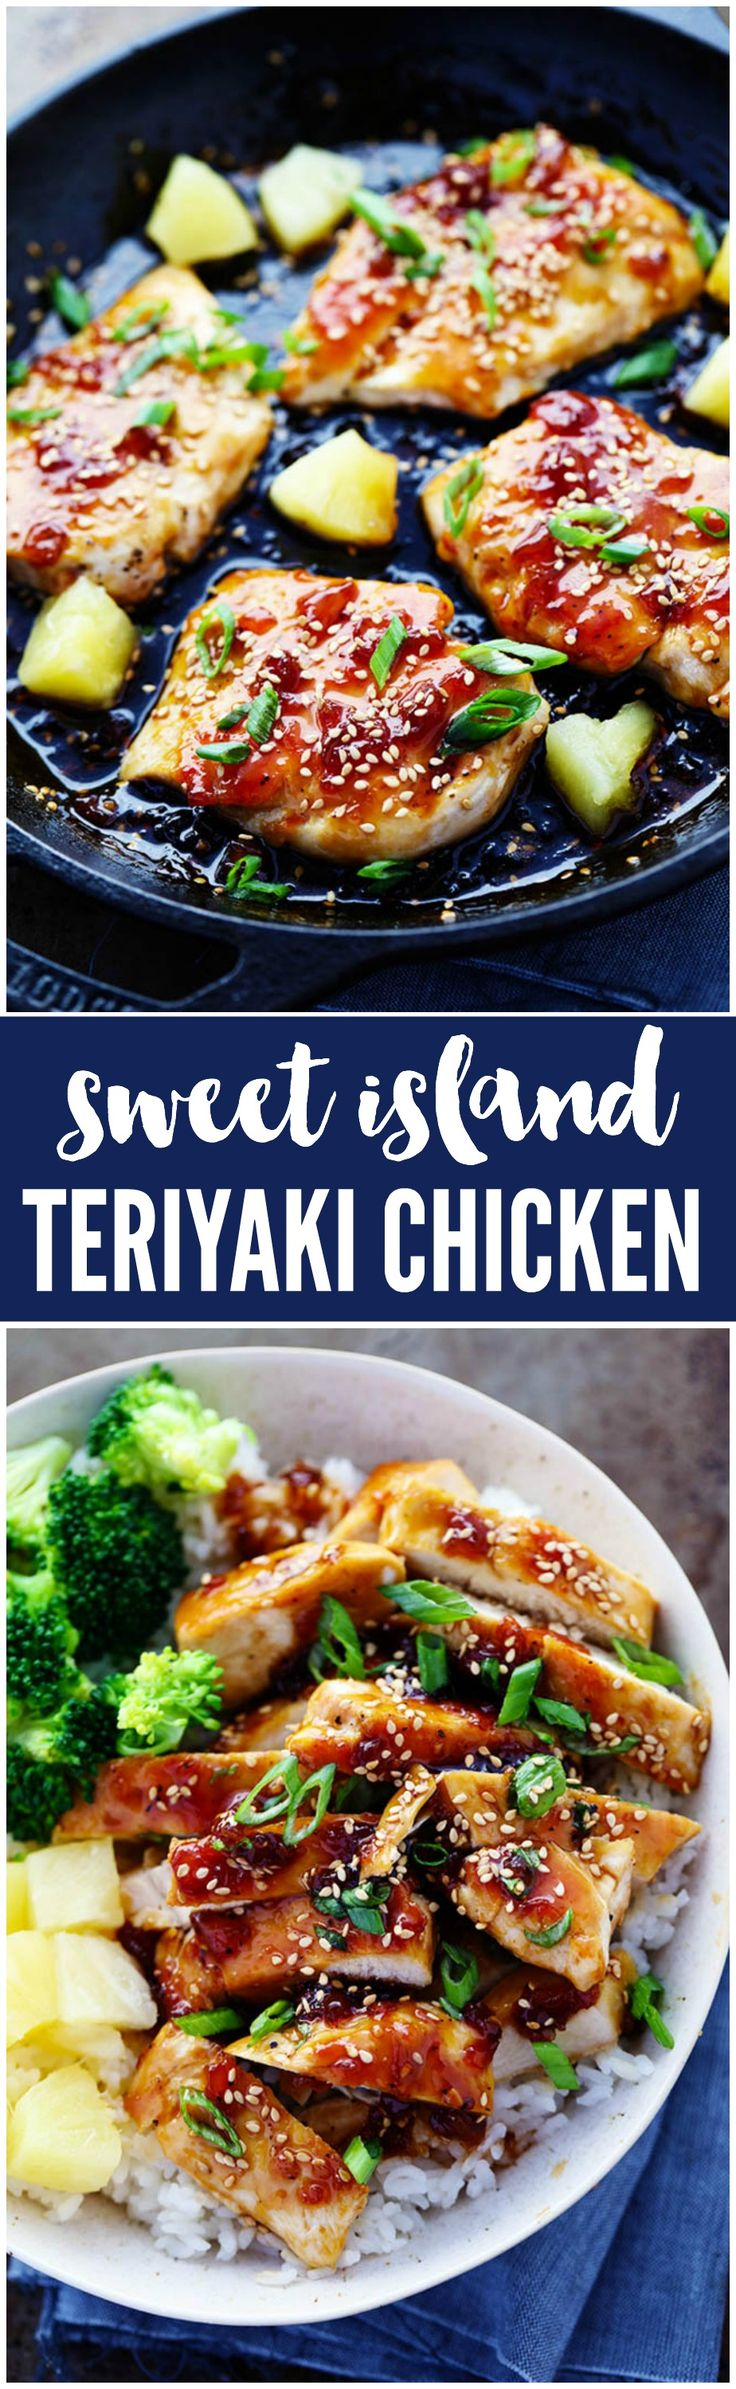 A sweet teriyaki sauce infused with pineapple and ginger bringing such an amazing marinade for this chicken! A quick 30 minute meal that you will make again and again! therecipecritic.com